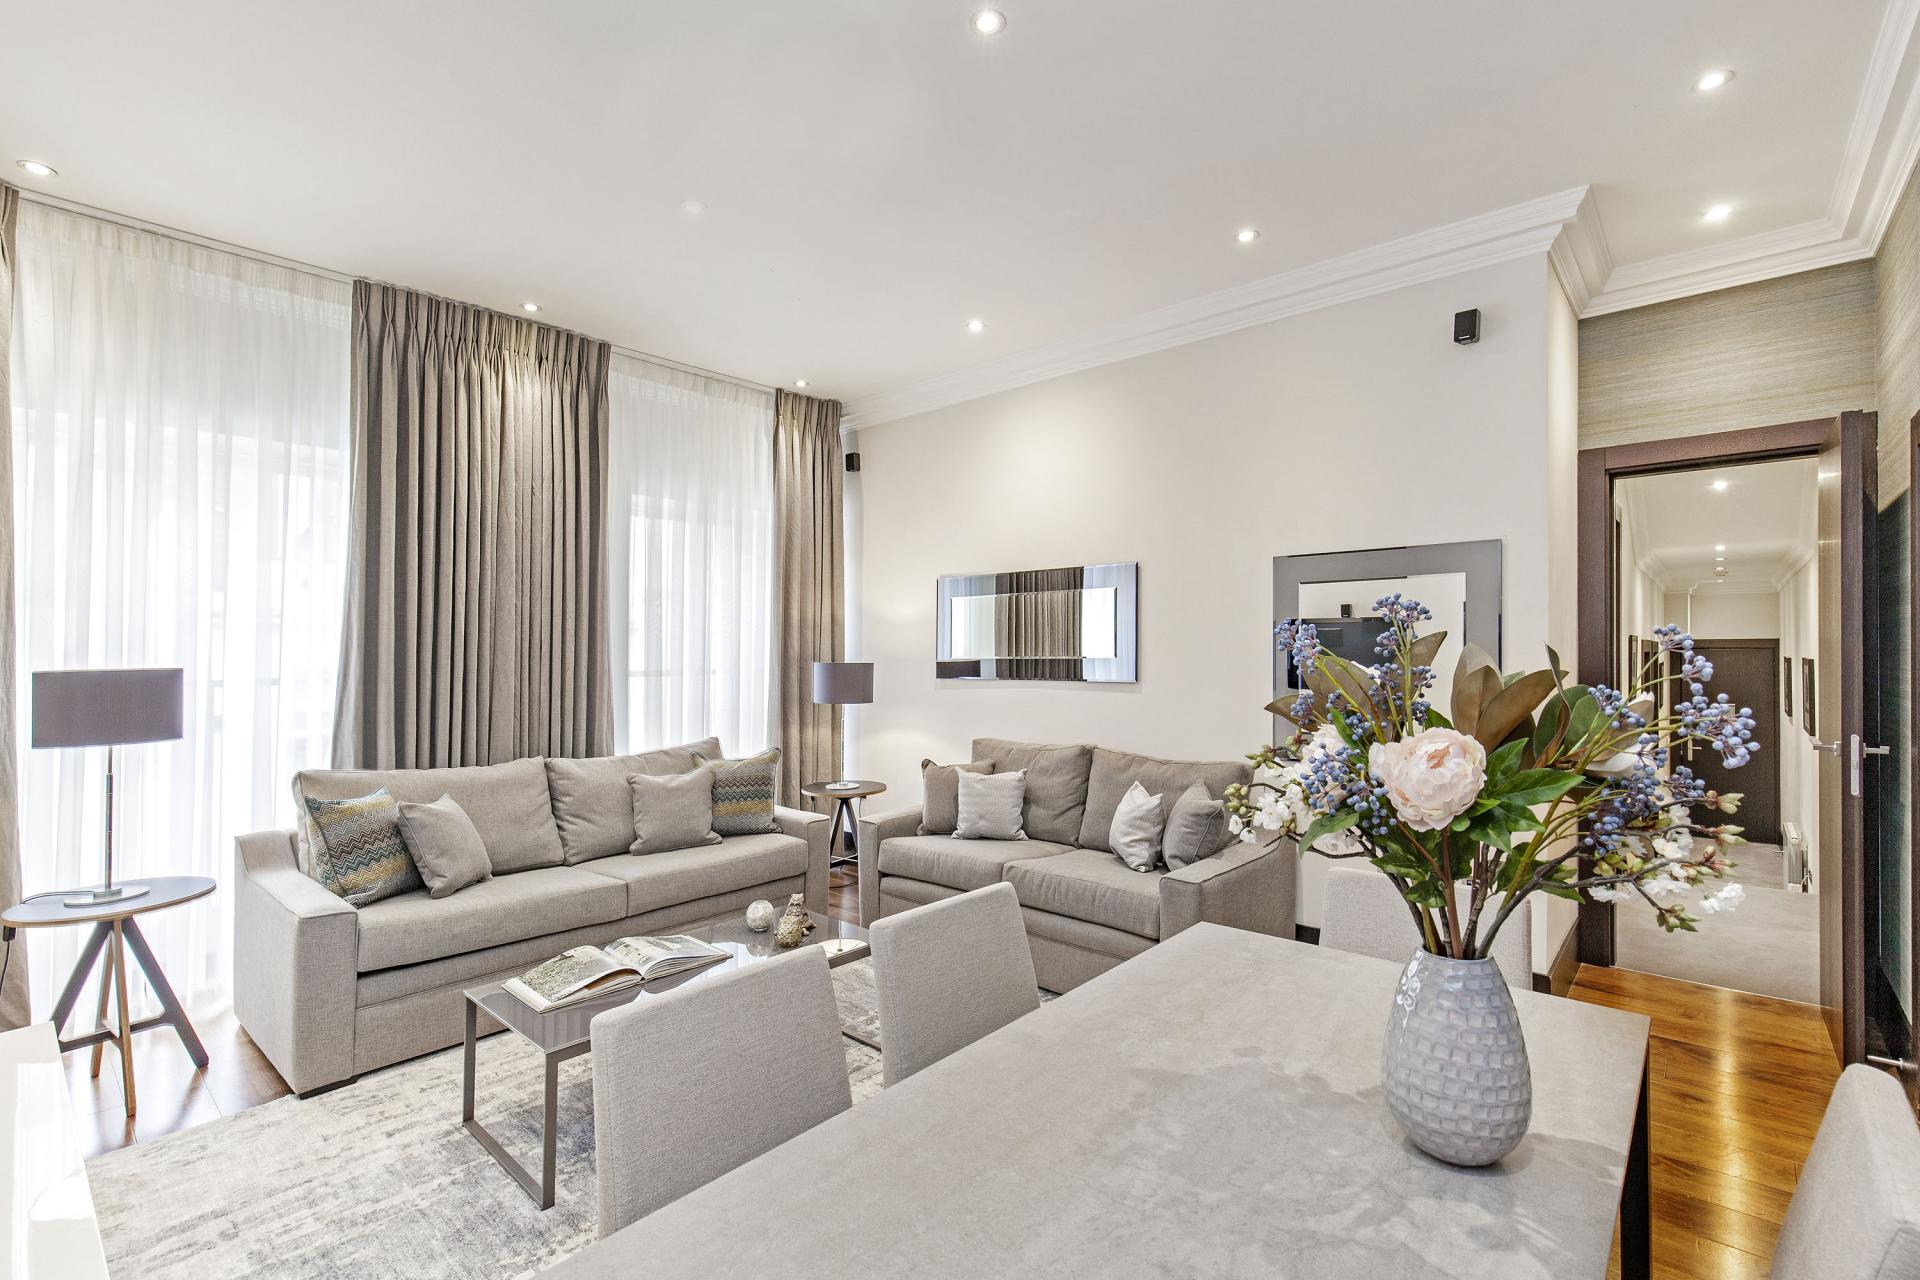 Sofa at 130 Queens Gate Apartments, South Kensington, London - Citybase Apartments